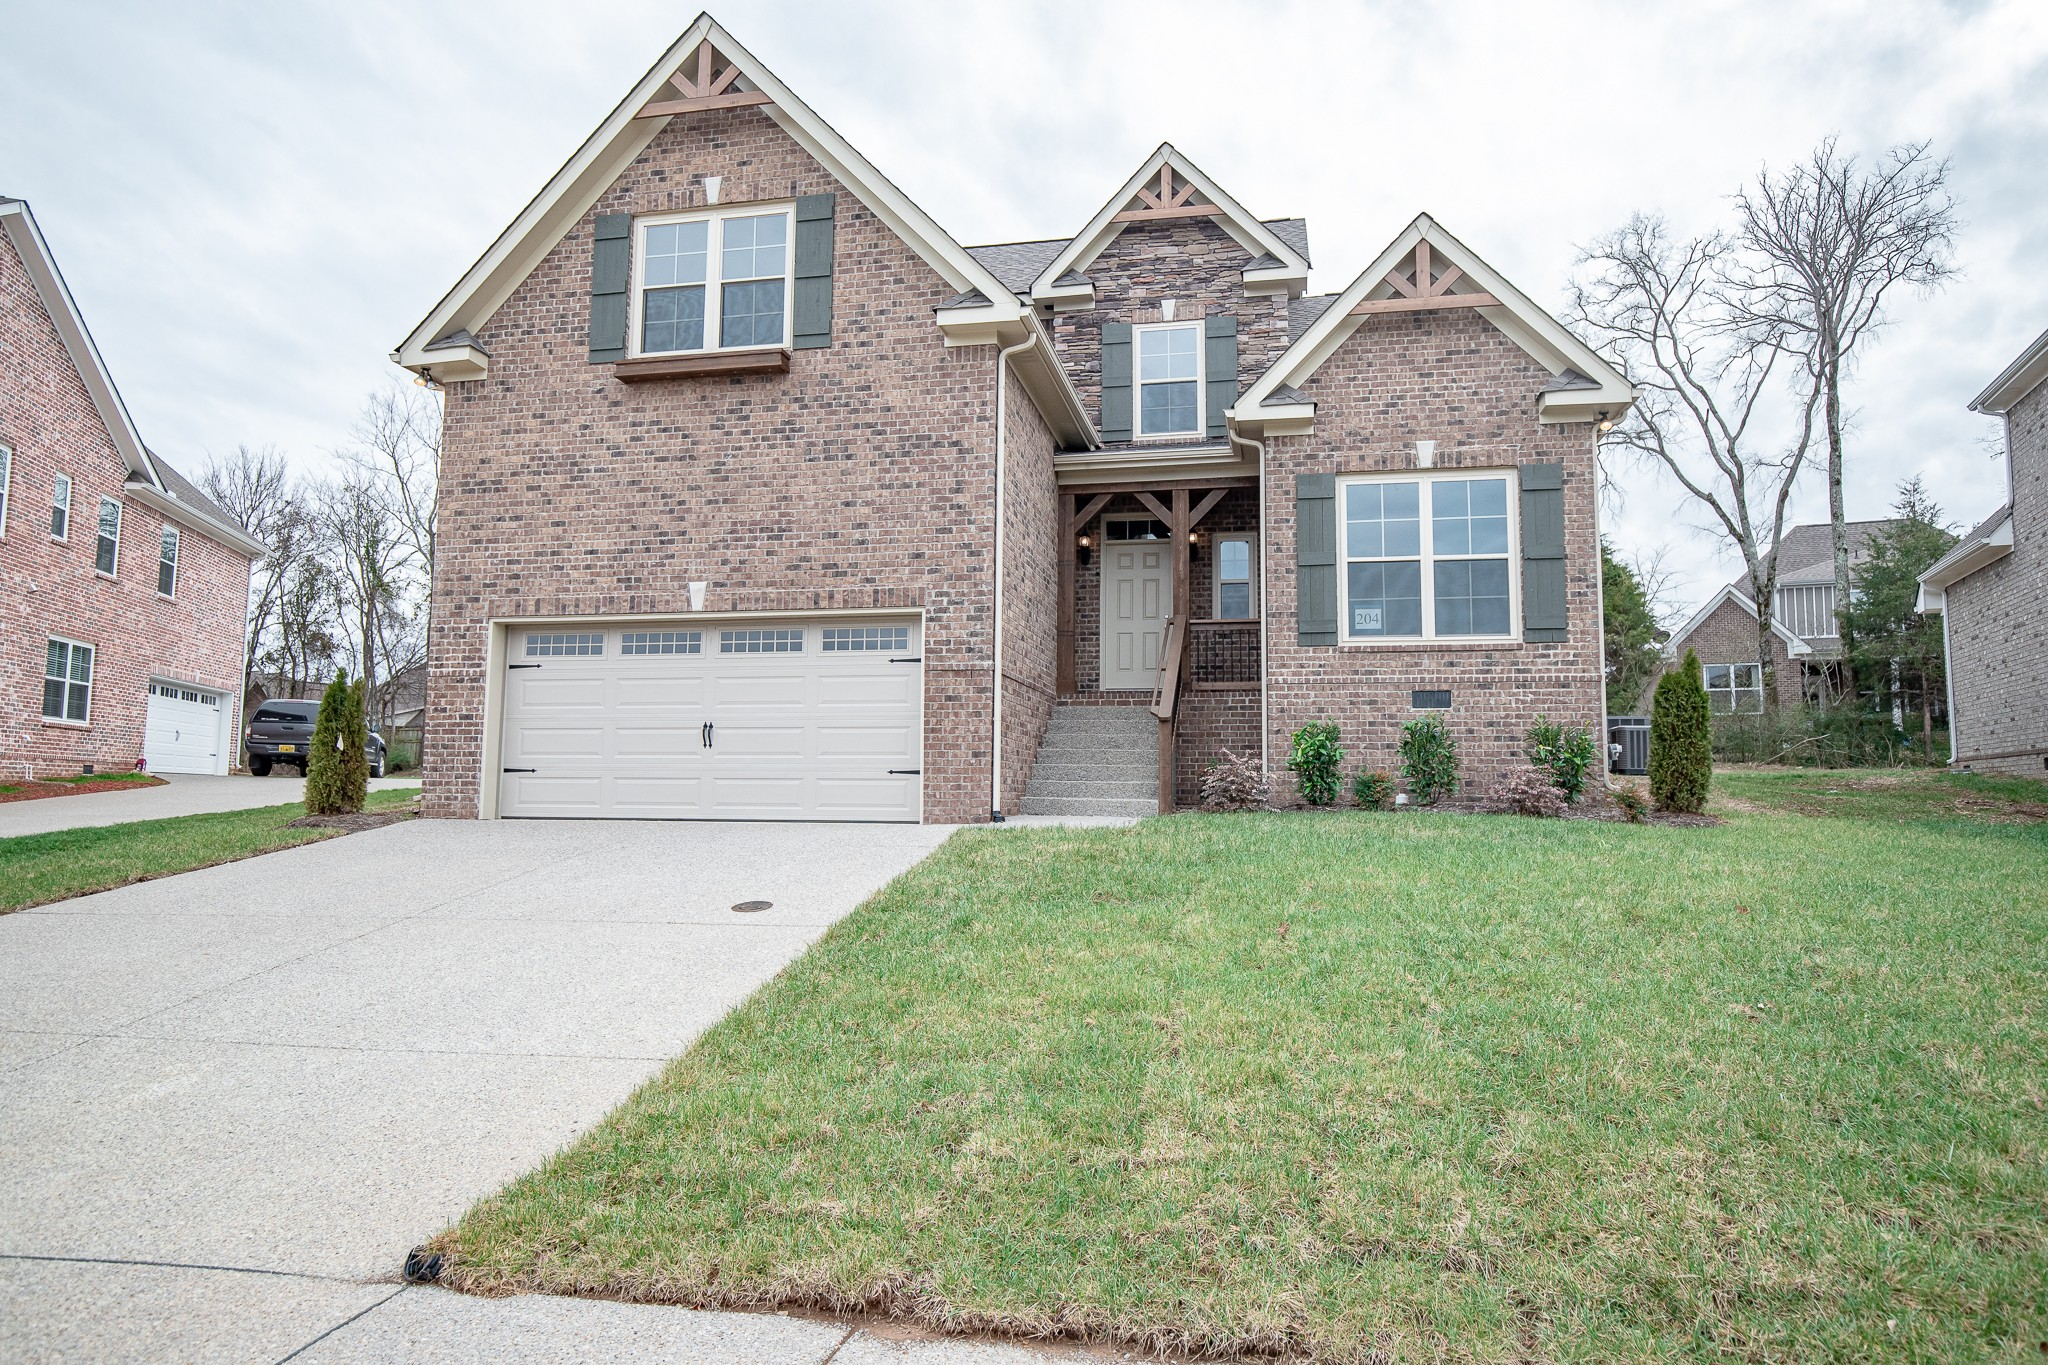 6033 Spade Drive Lot 204, Spring Hill, Tennessee